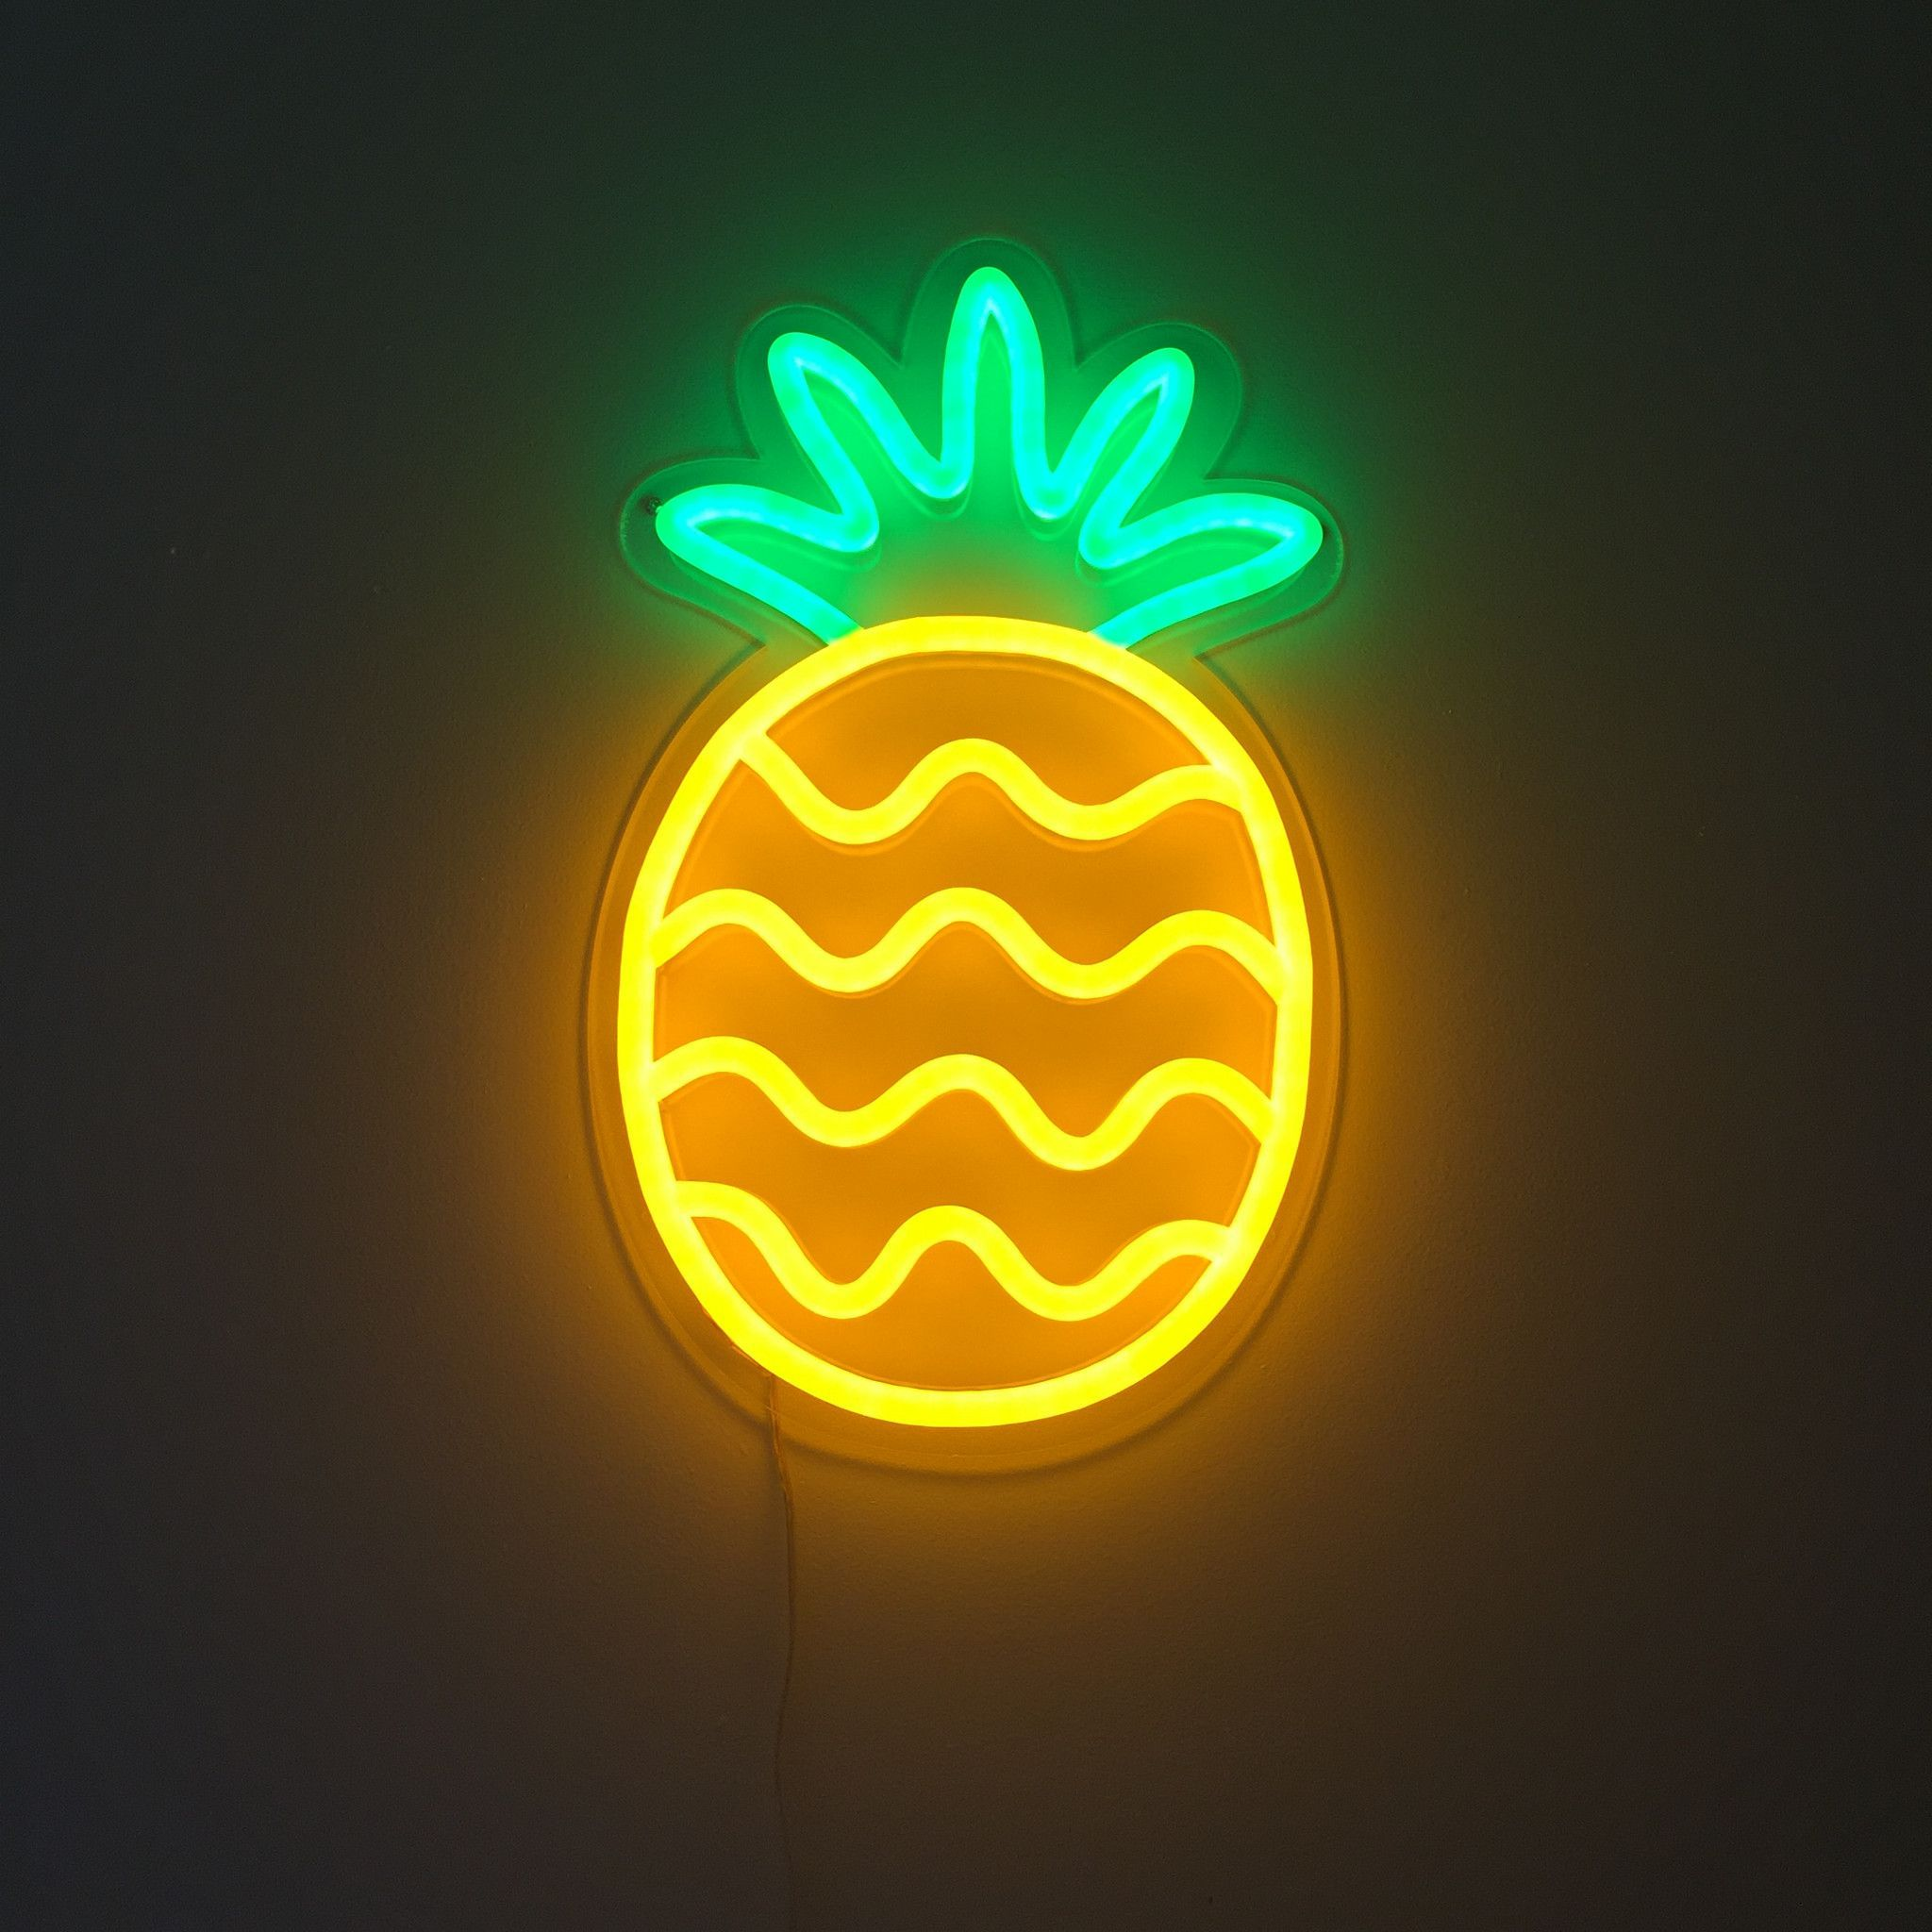 Pineapple | Sports + Lifestyle | Pinterest | Green led ...